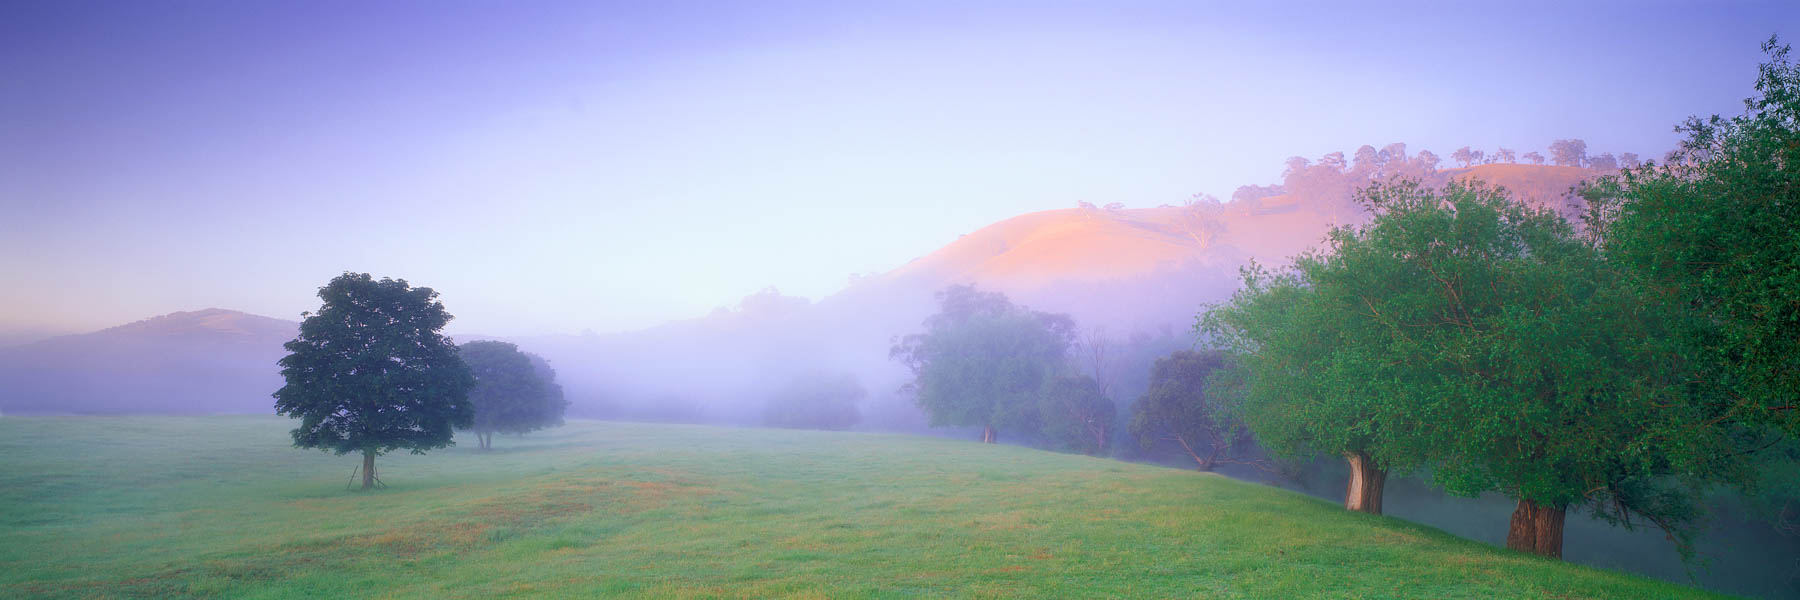 Mist hanging over the Omeo Valley at sunrise, Victoria, Australia.